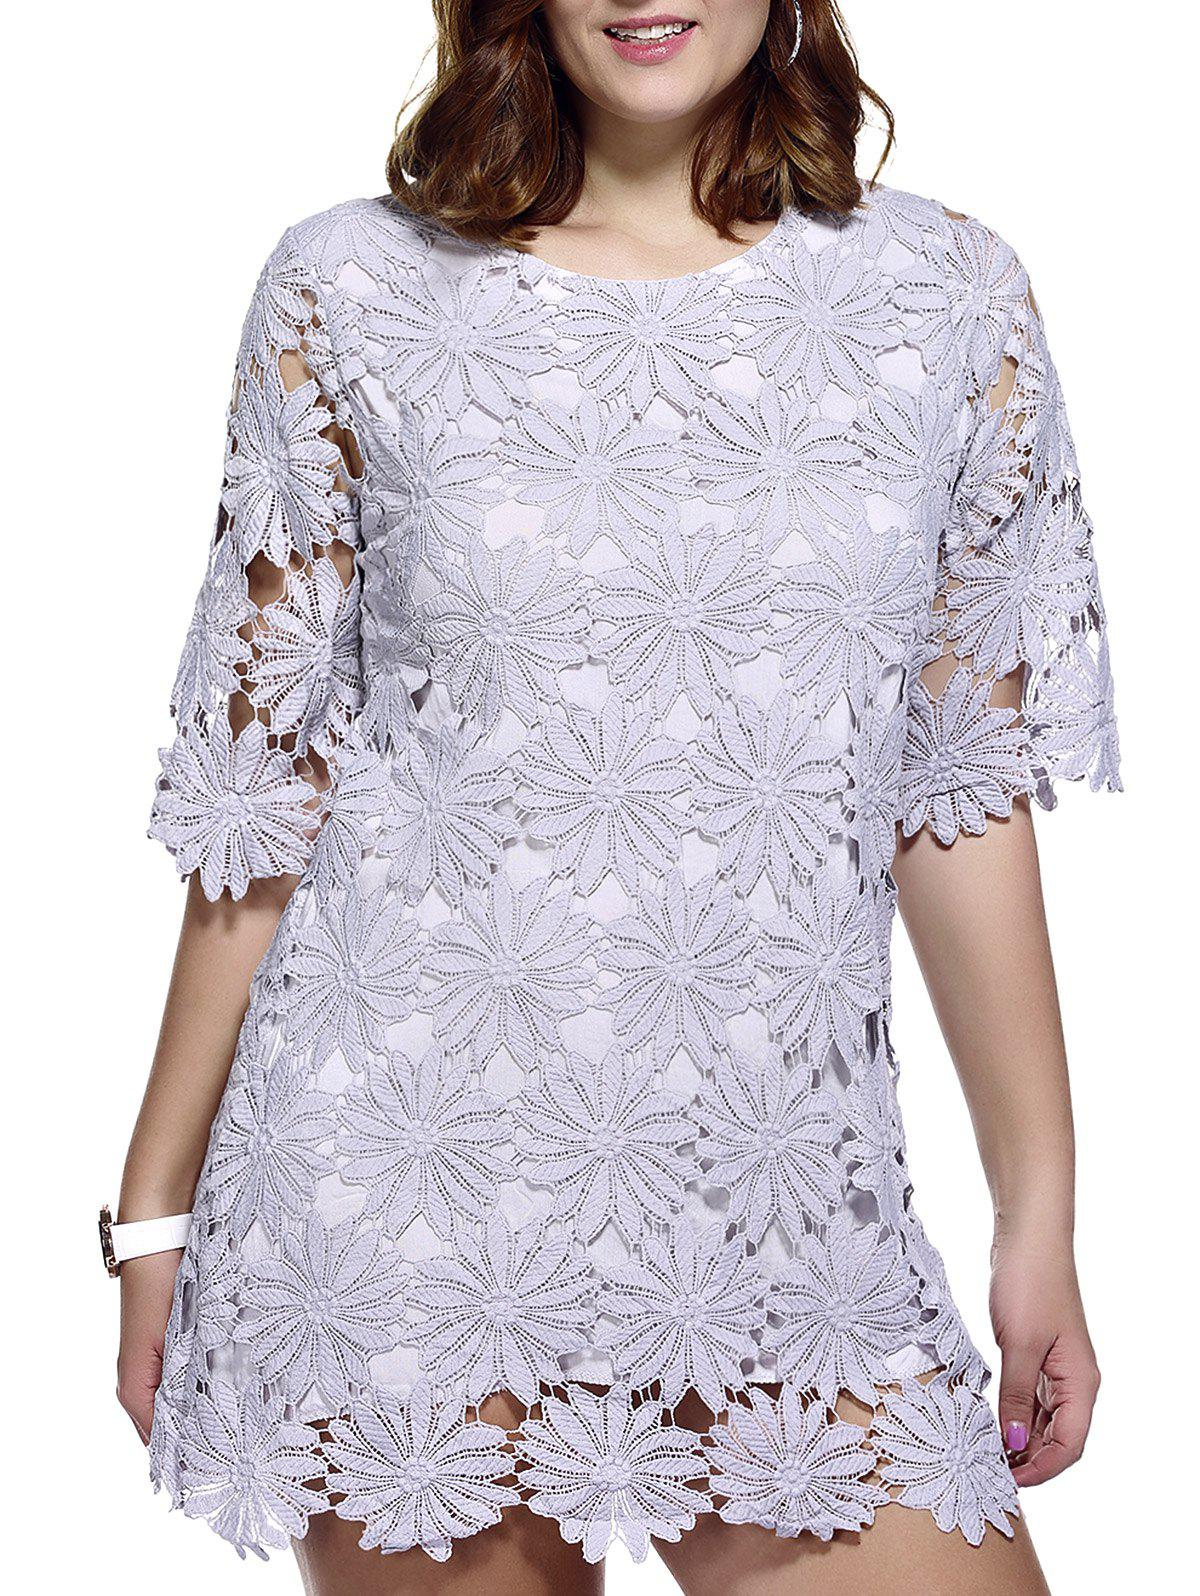 Stylish Women's Plus Size Floral Pattern Lace Overlay Dress